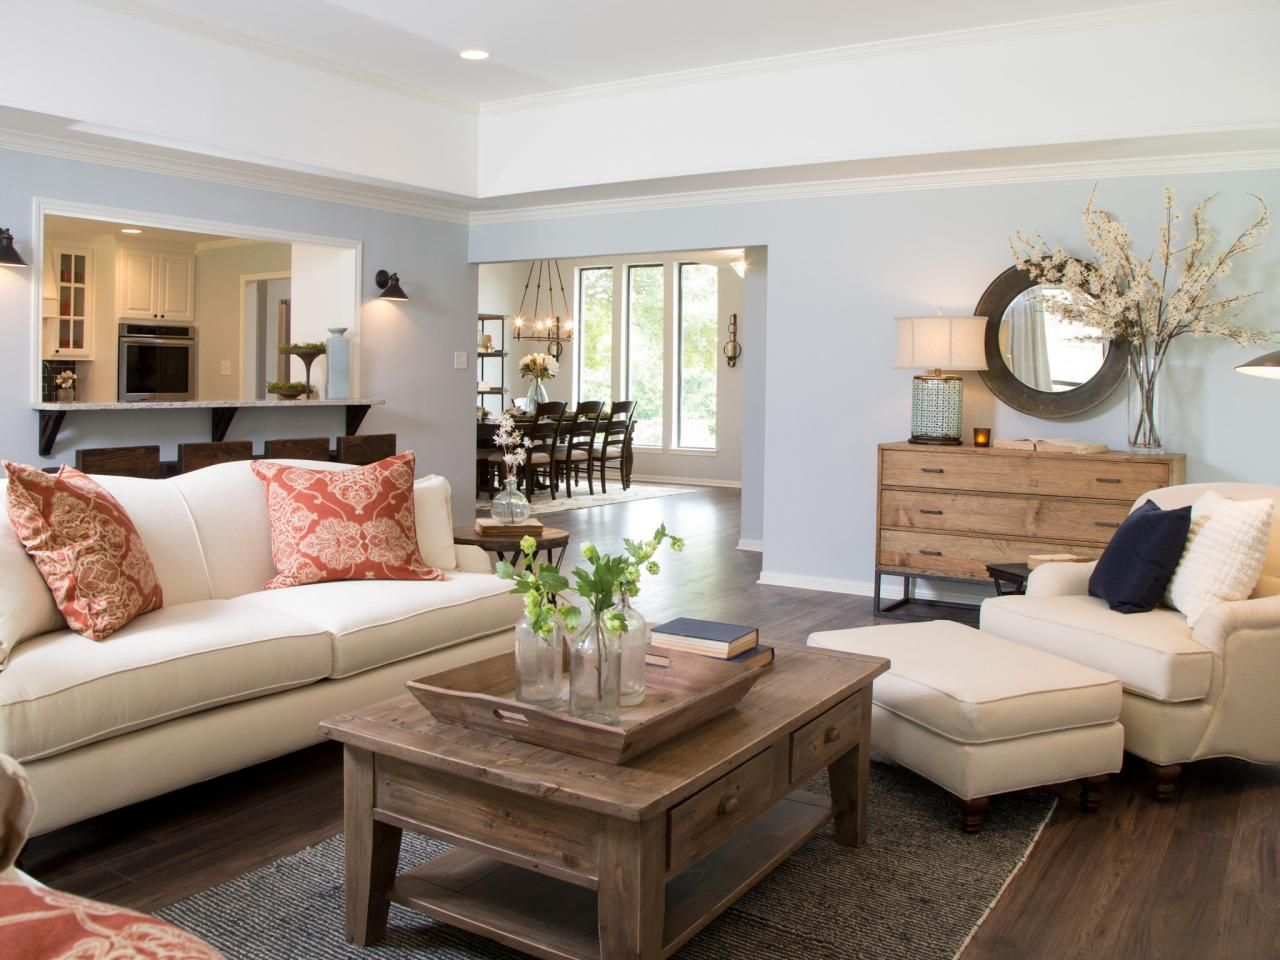 living rooms decorated by joanna gaines photos of room dividers fixer upper a rush to renovate an 80s ranch home spare hgtv